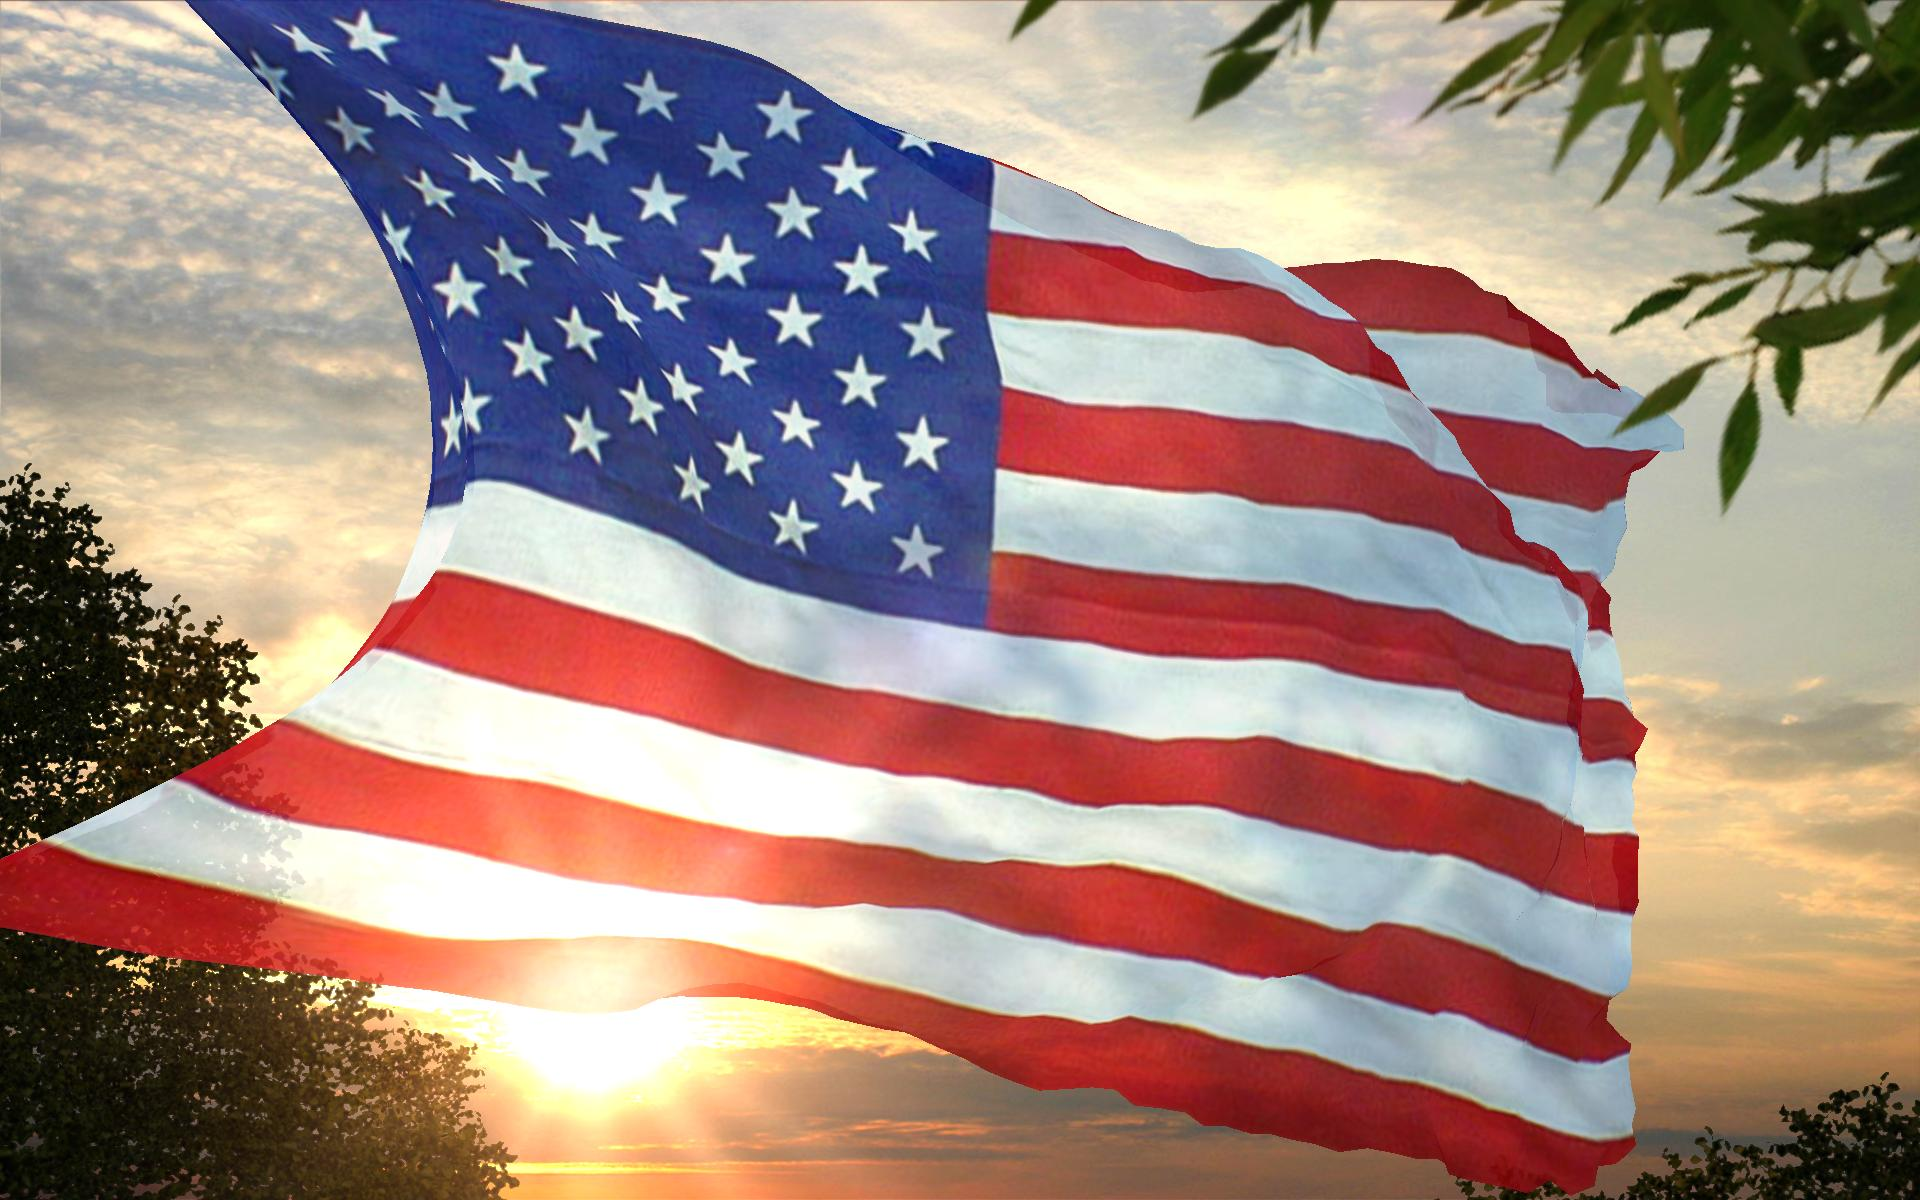 USA American Flag Wallpaper